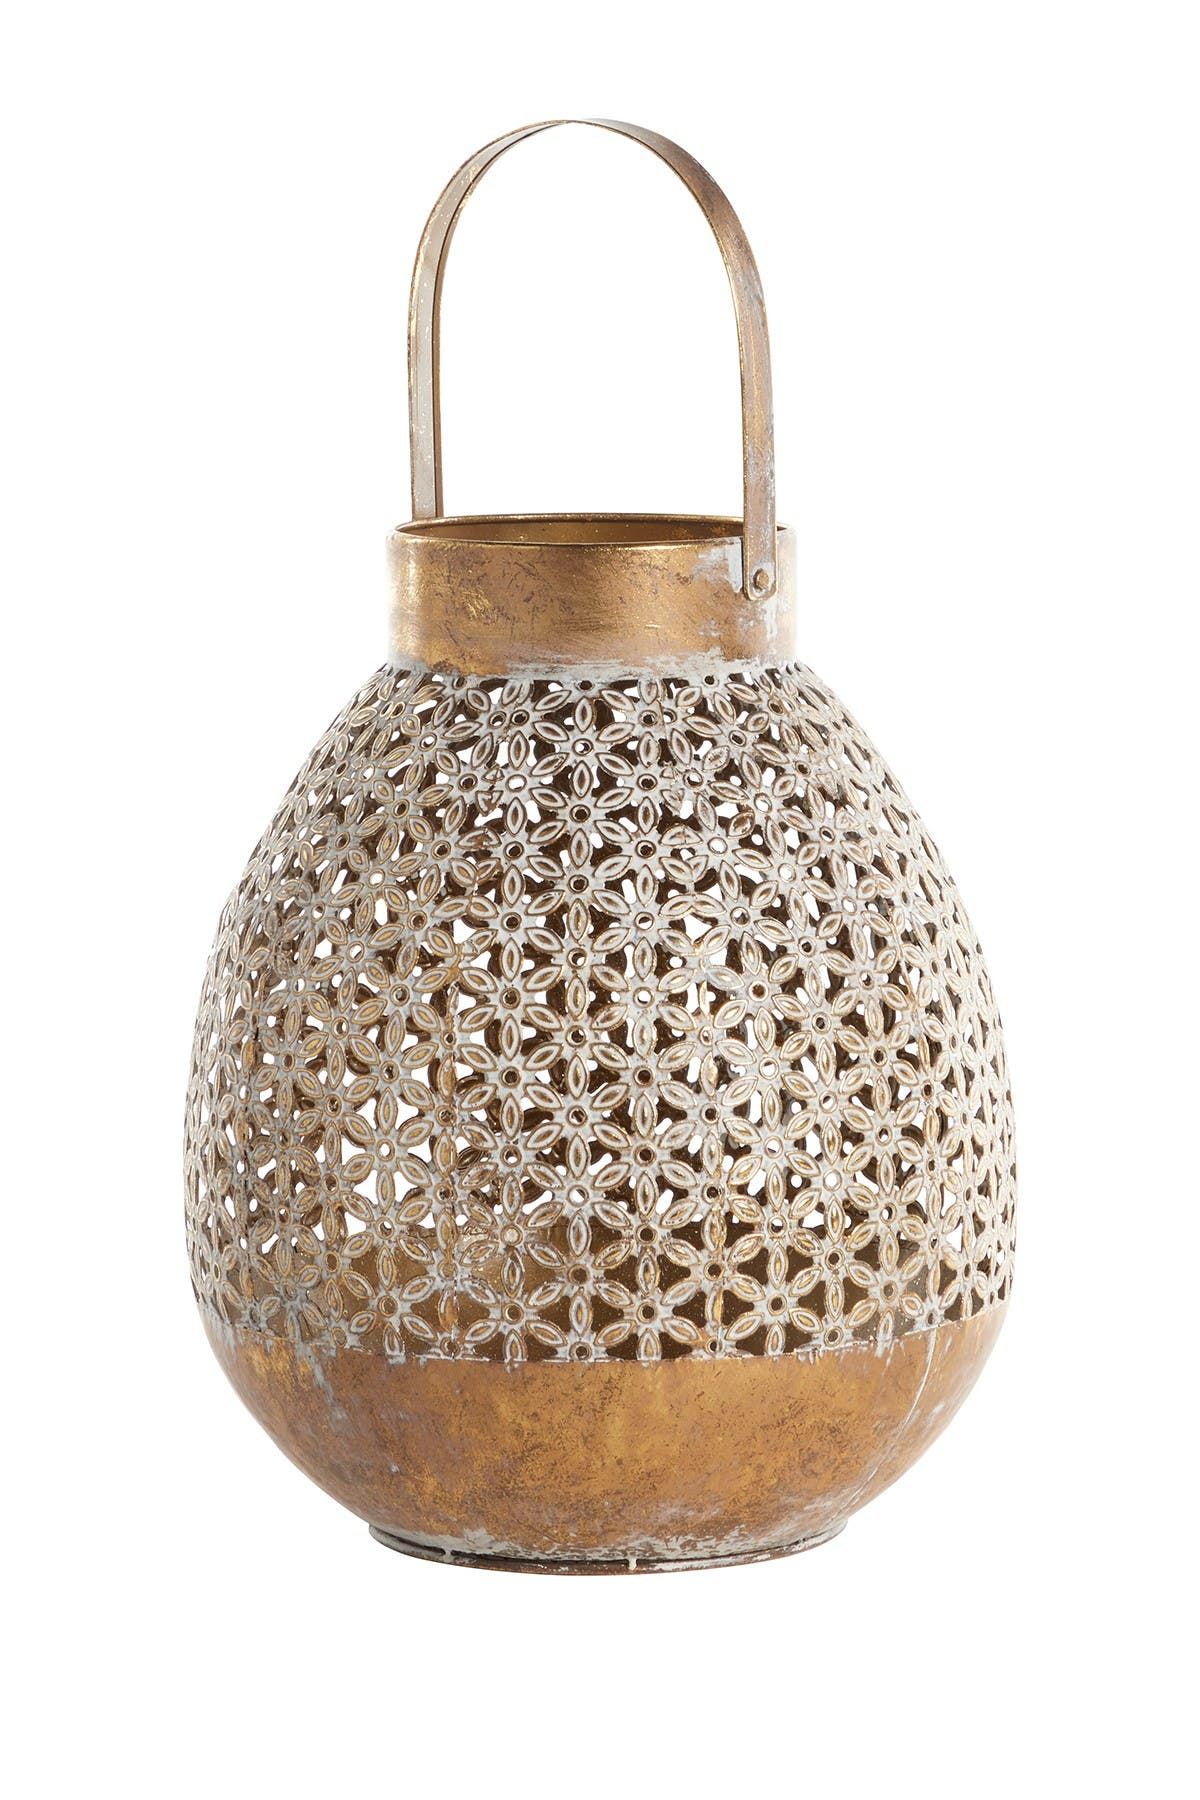 """Image of Willow Row Round Distressed White And Antique Gold Metal Lantern With Floral Pattern Detail - 13"""" x 16"""""""